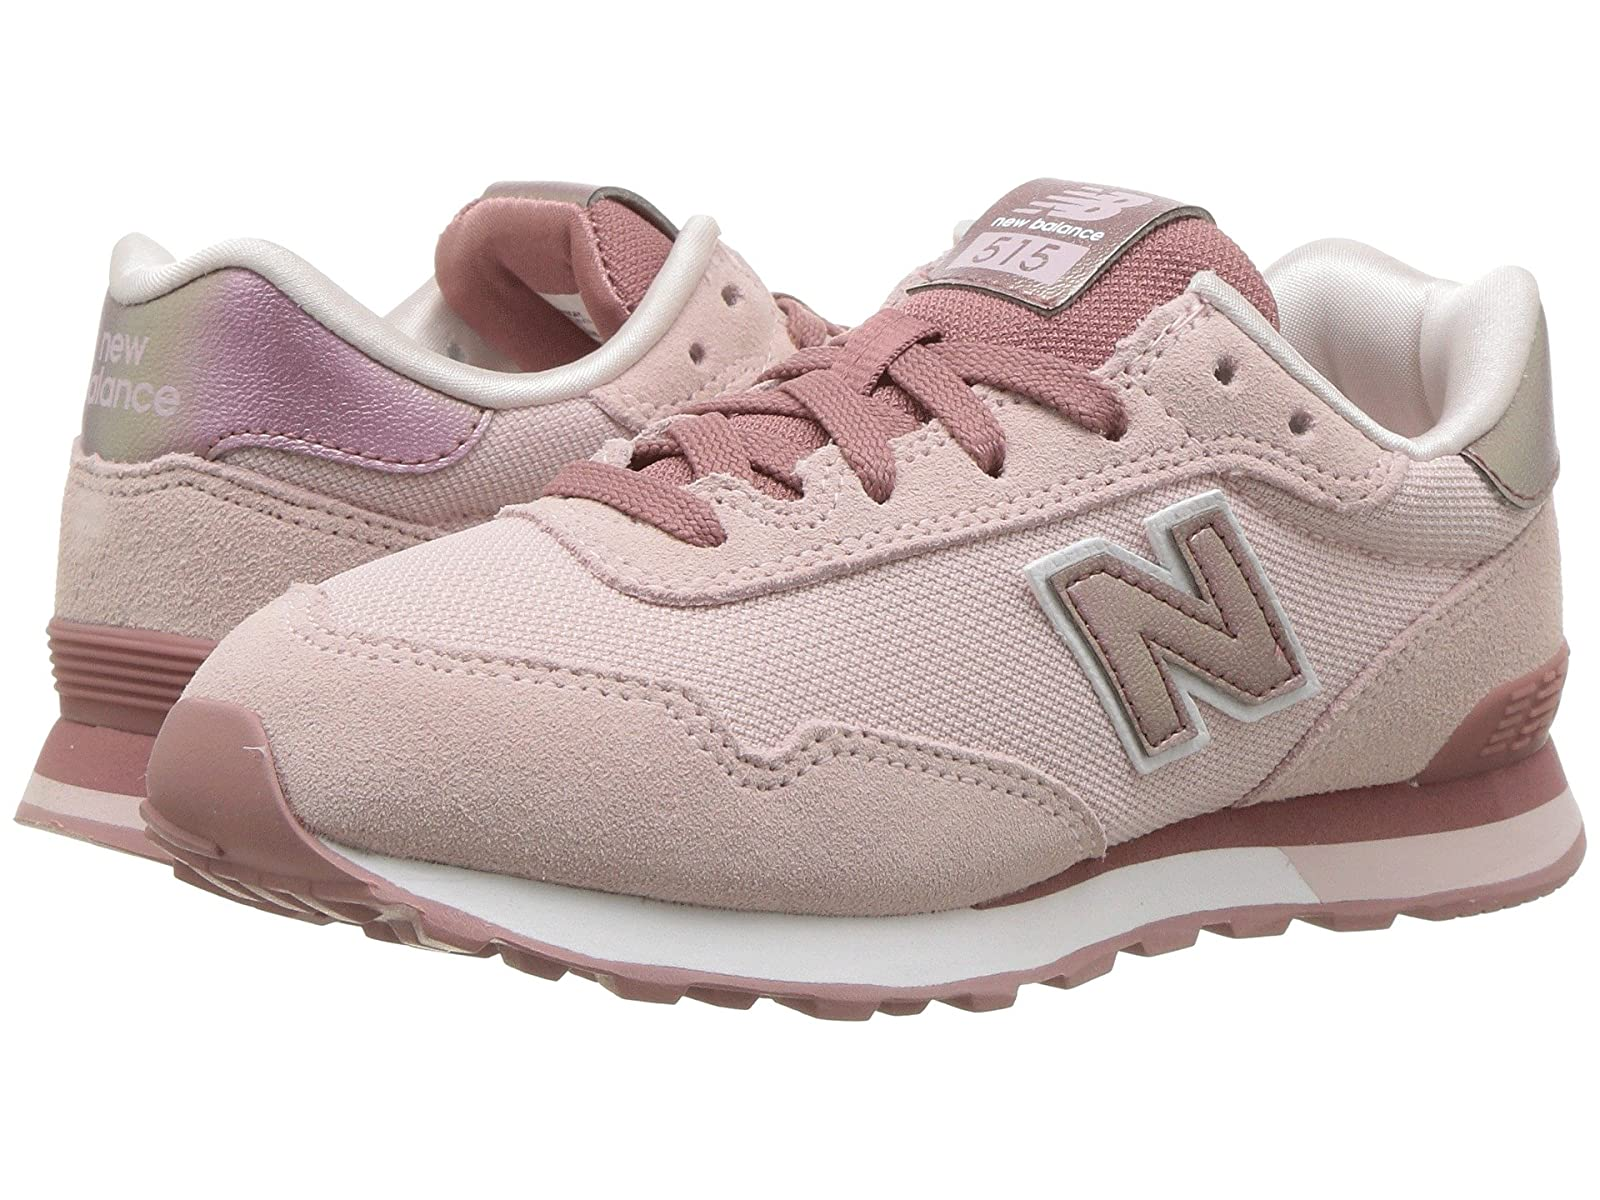 New Balance Kids KL515v1Y (Little Kid/Big Kid)Atmospheric grades have affordable shoes